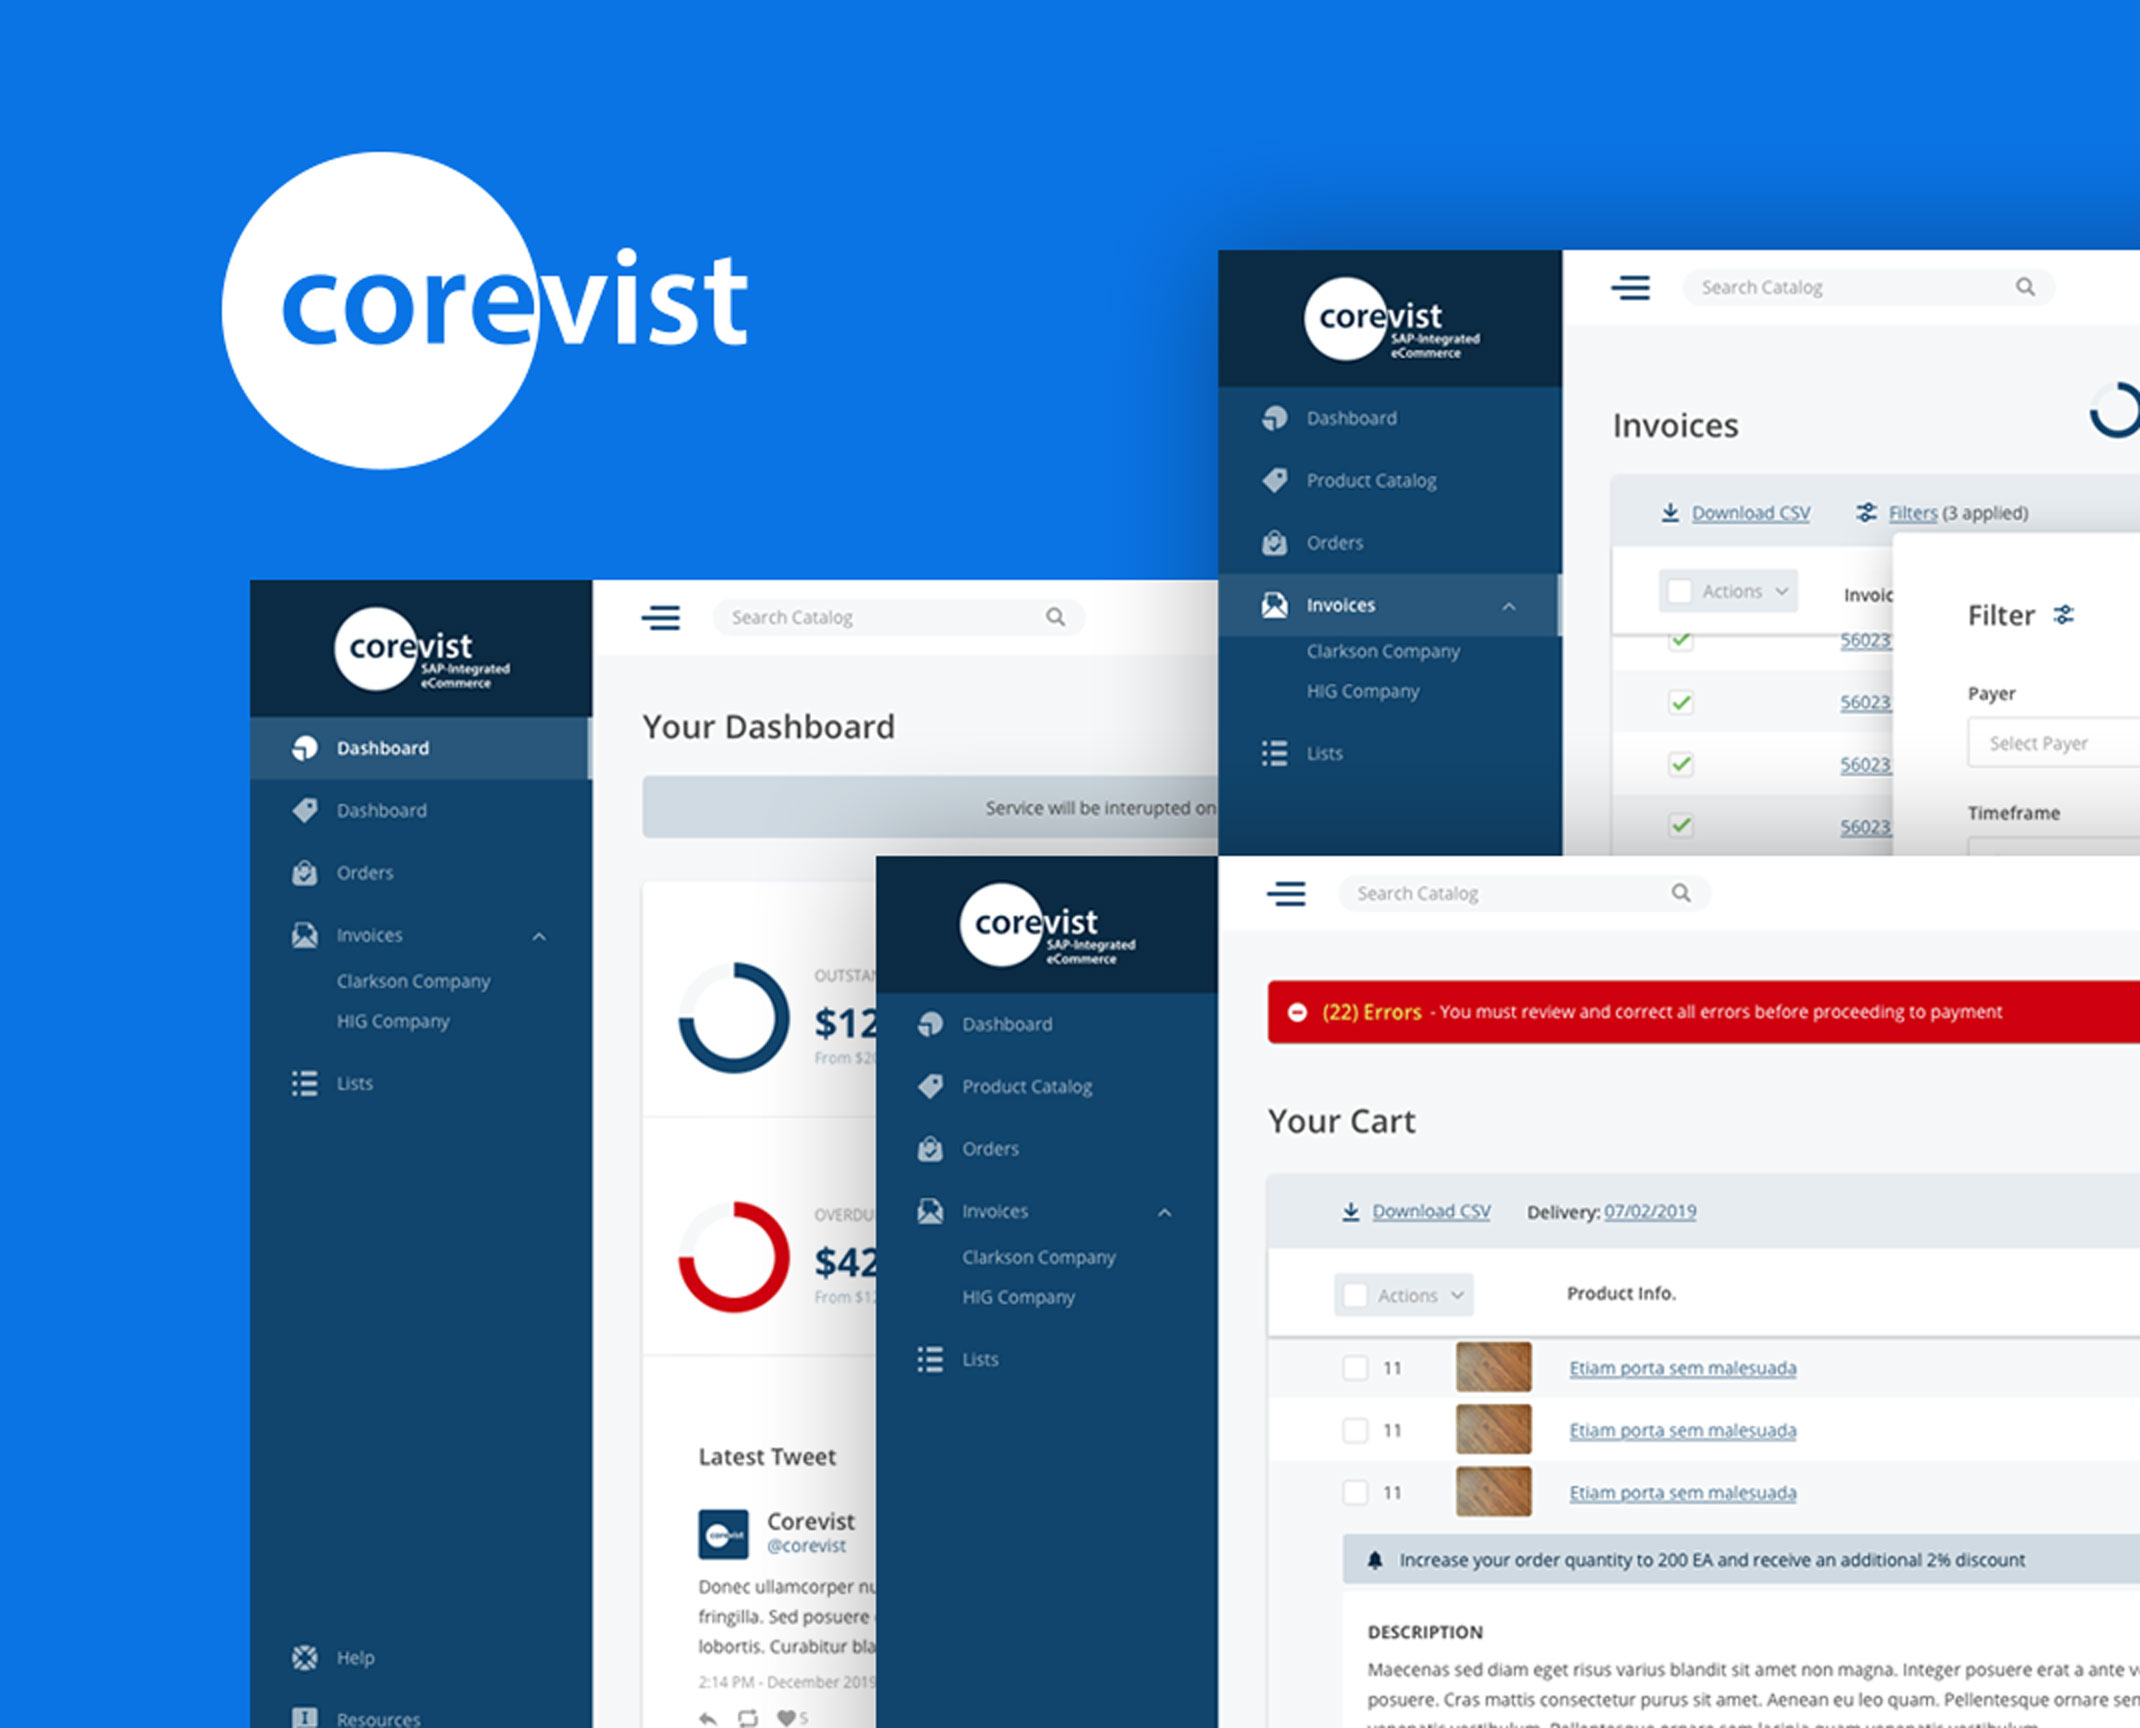 Screen captures of the new Corevist design system